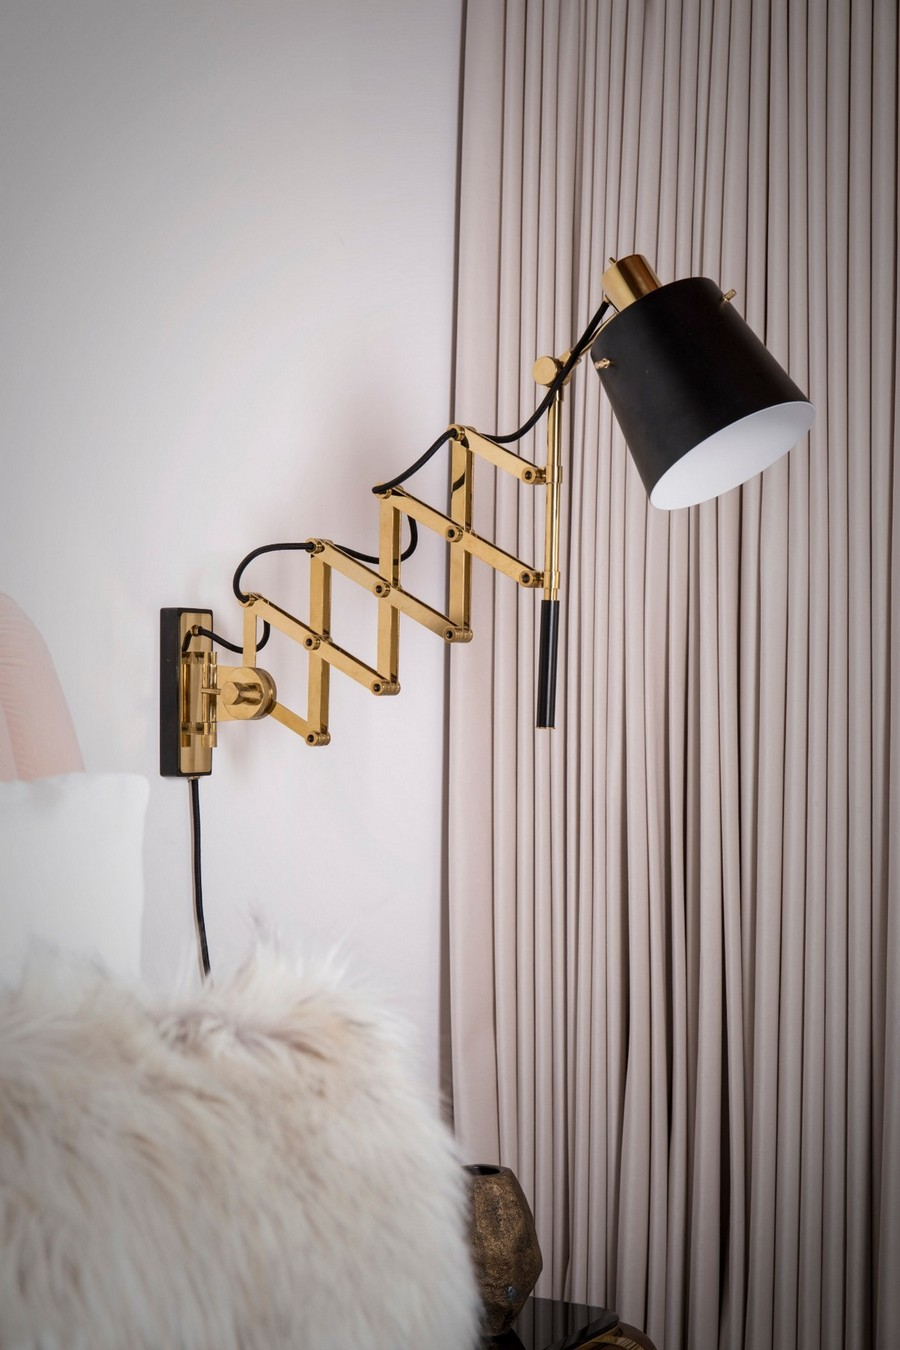 Inspire Yourself with these Amazing Lighting Products lighting products Inspire Yourself with these Amazing Lighting Products Inspire Yourself with these Amazing Lighting Products 6